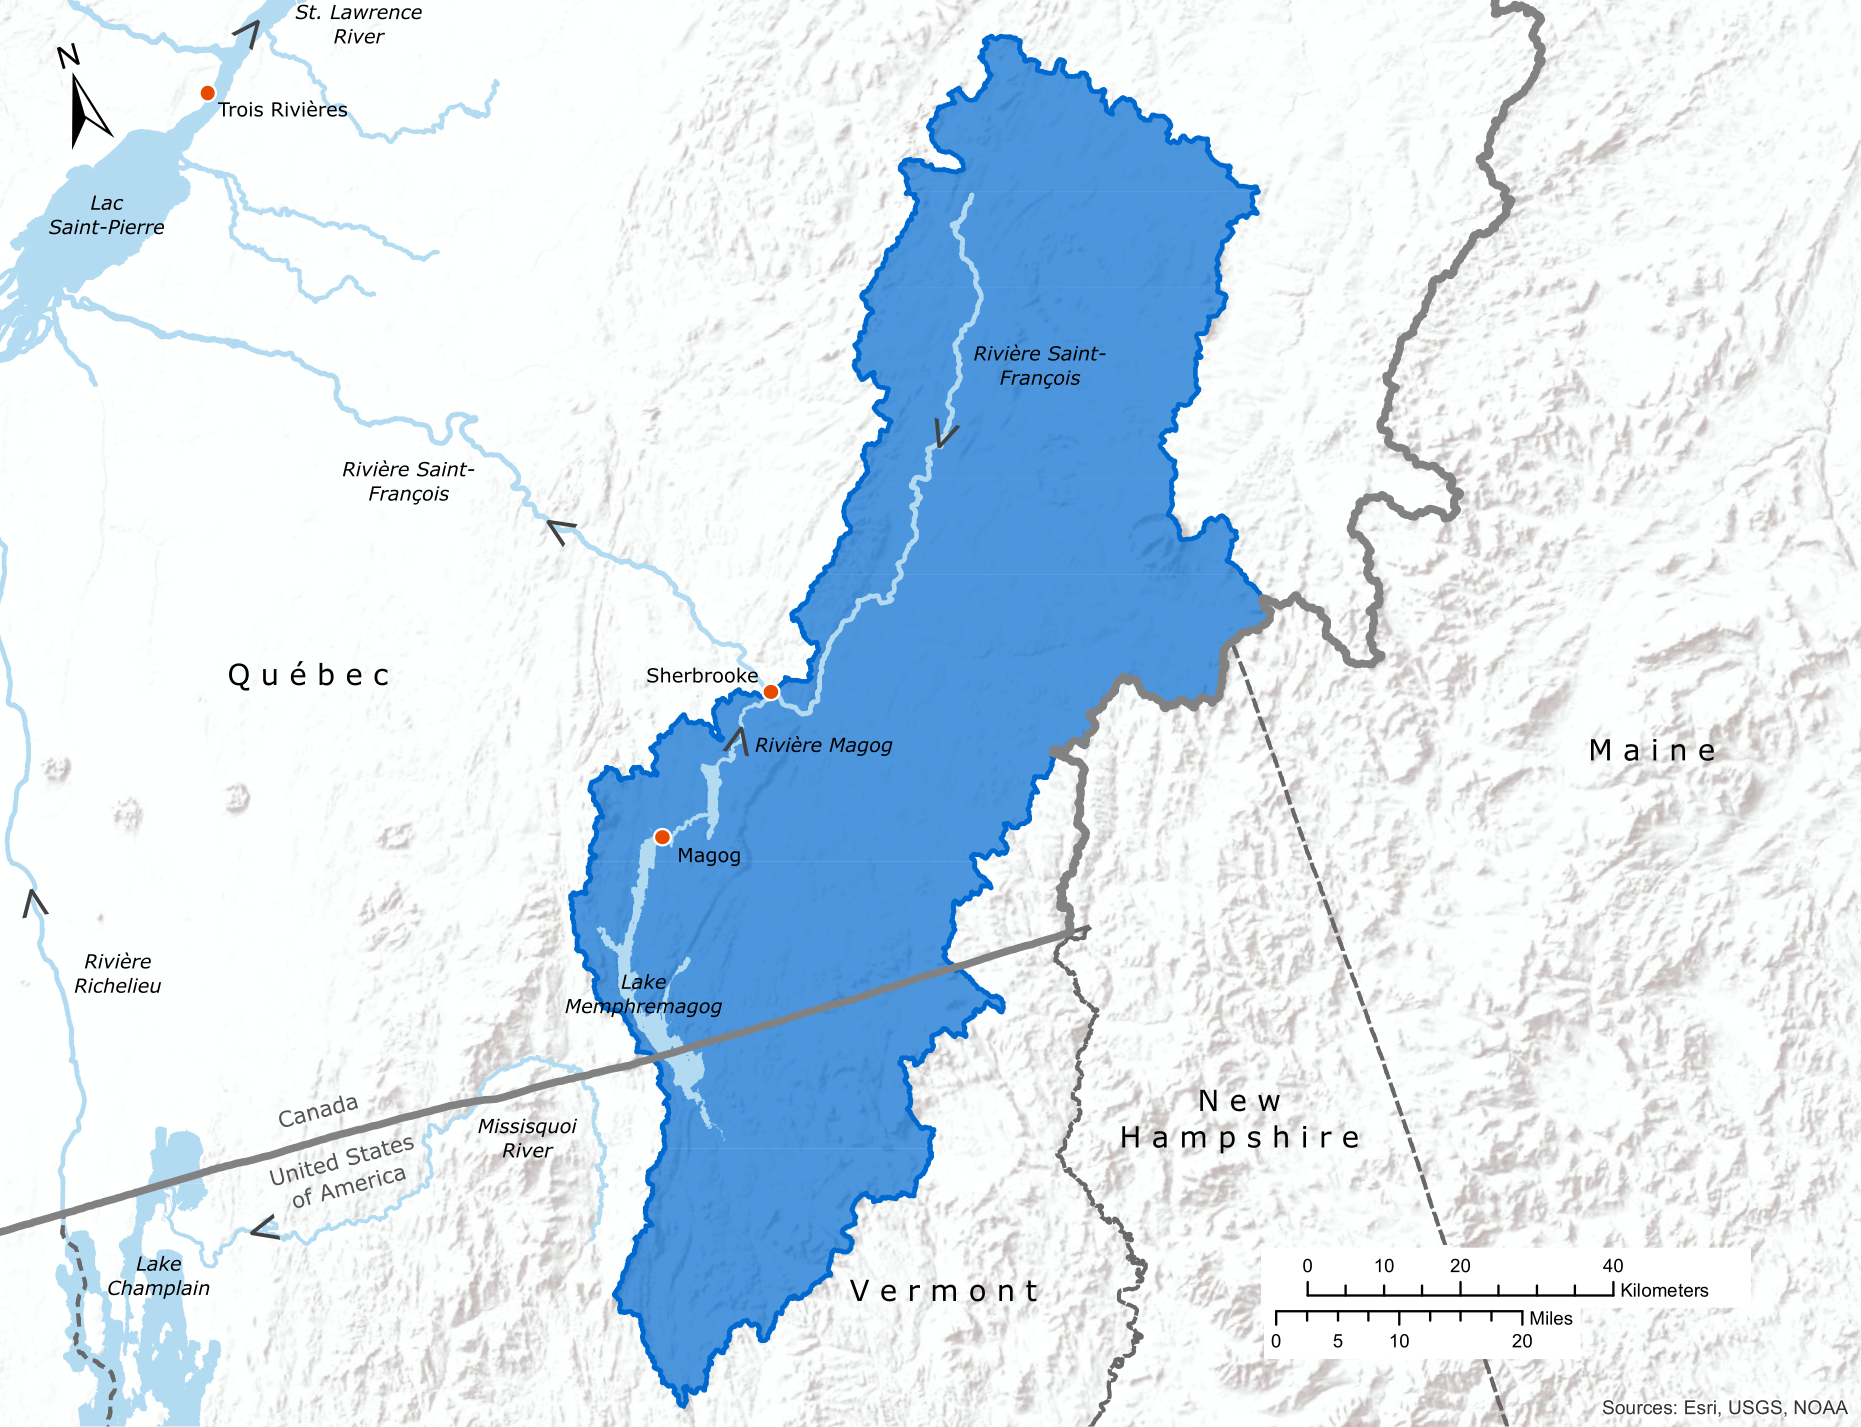 Map of the Lake Memphremagog region